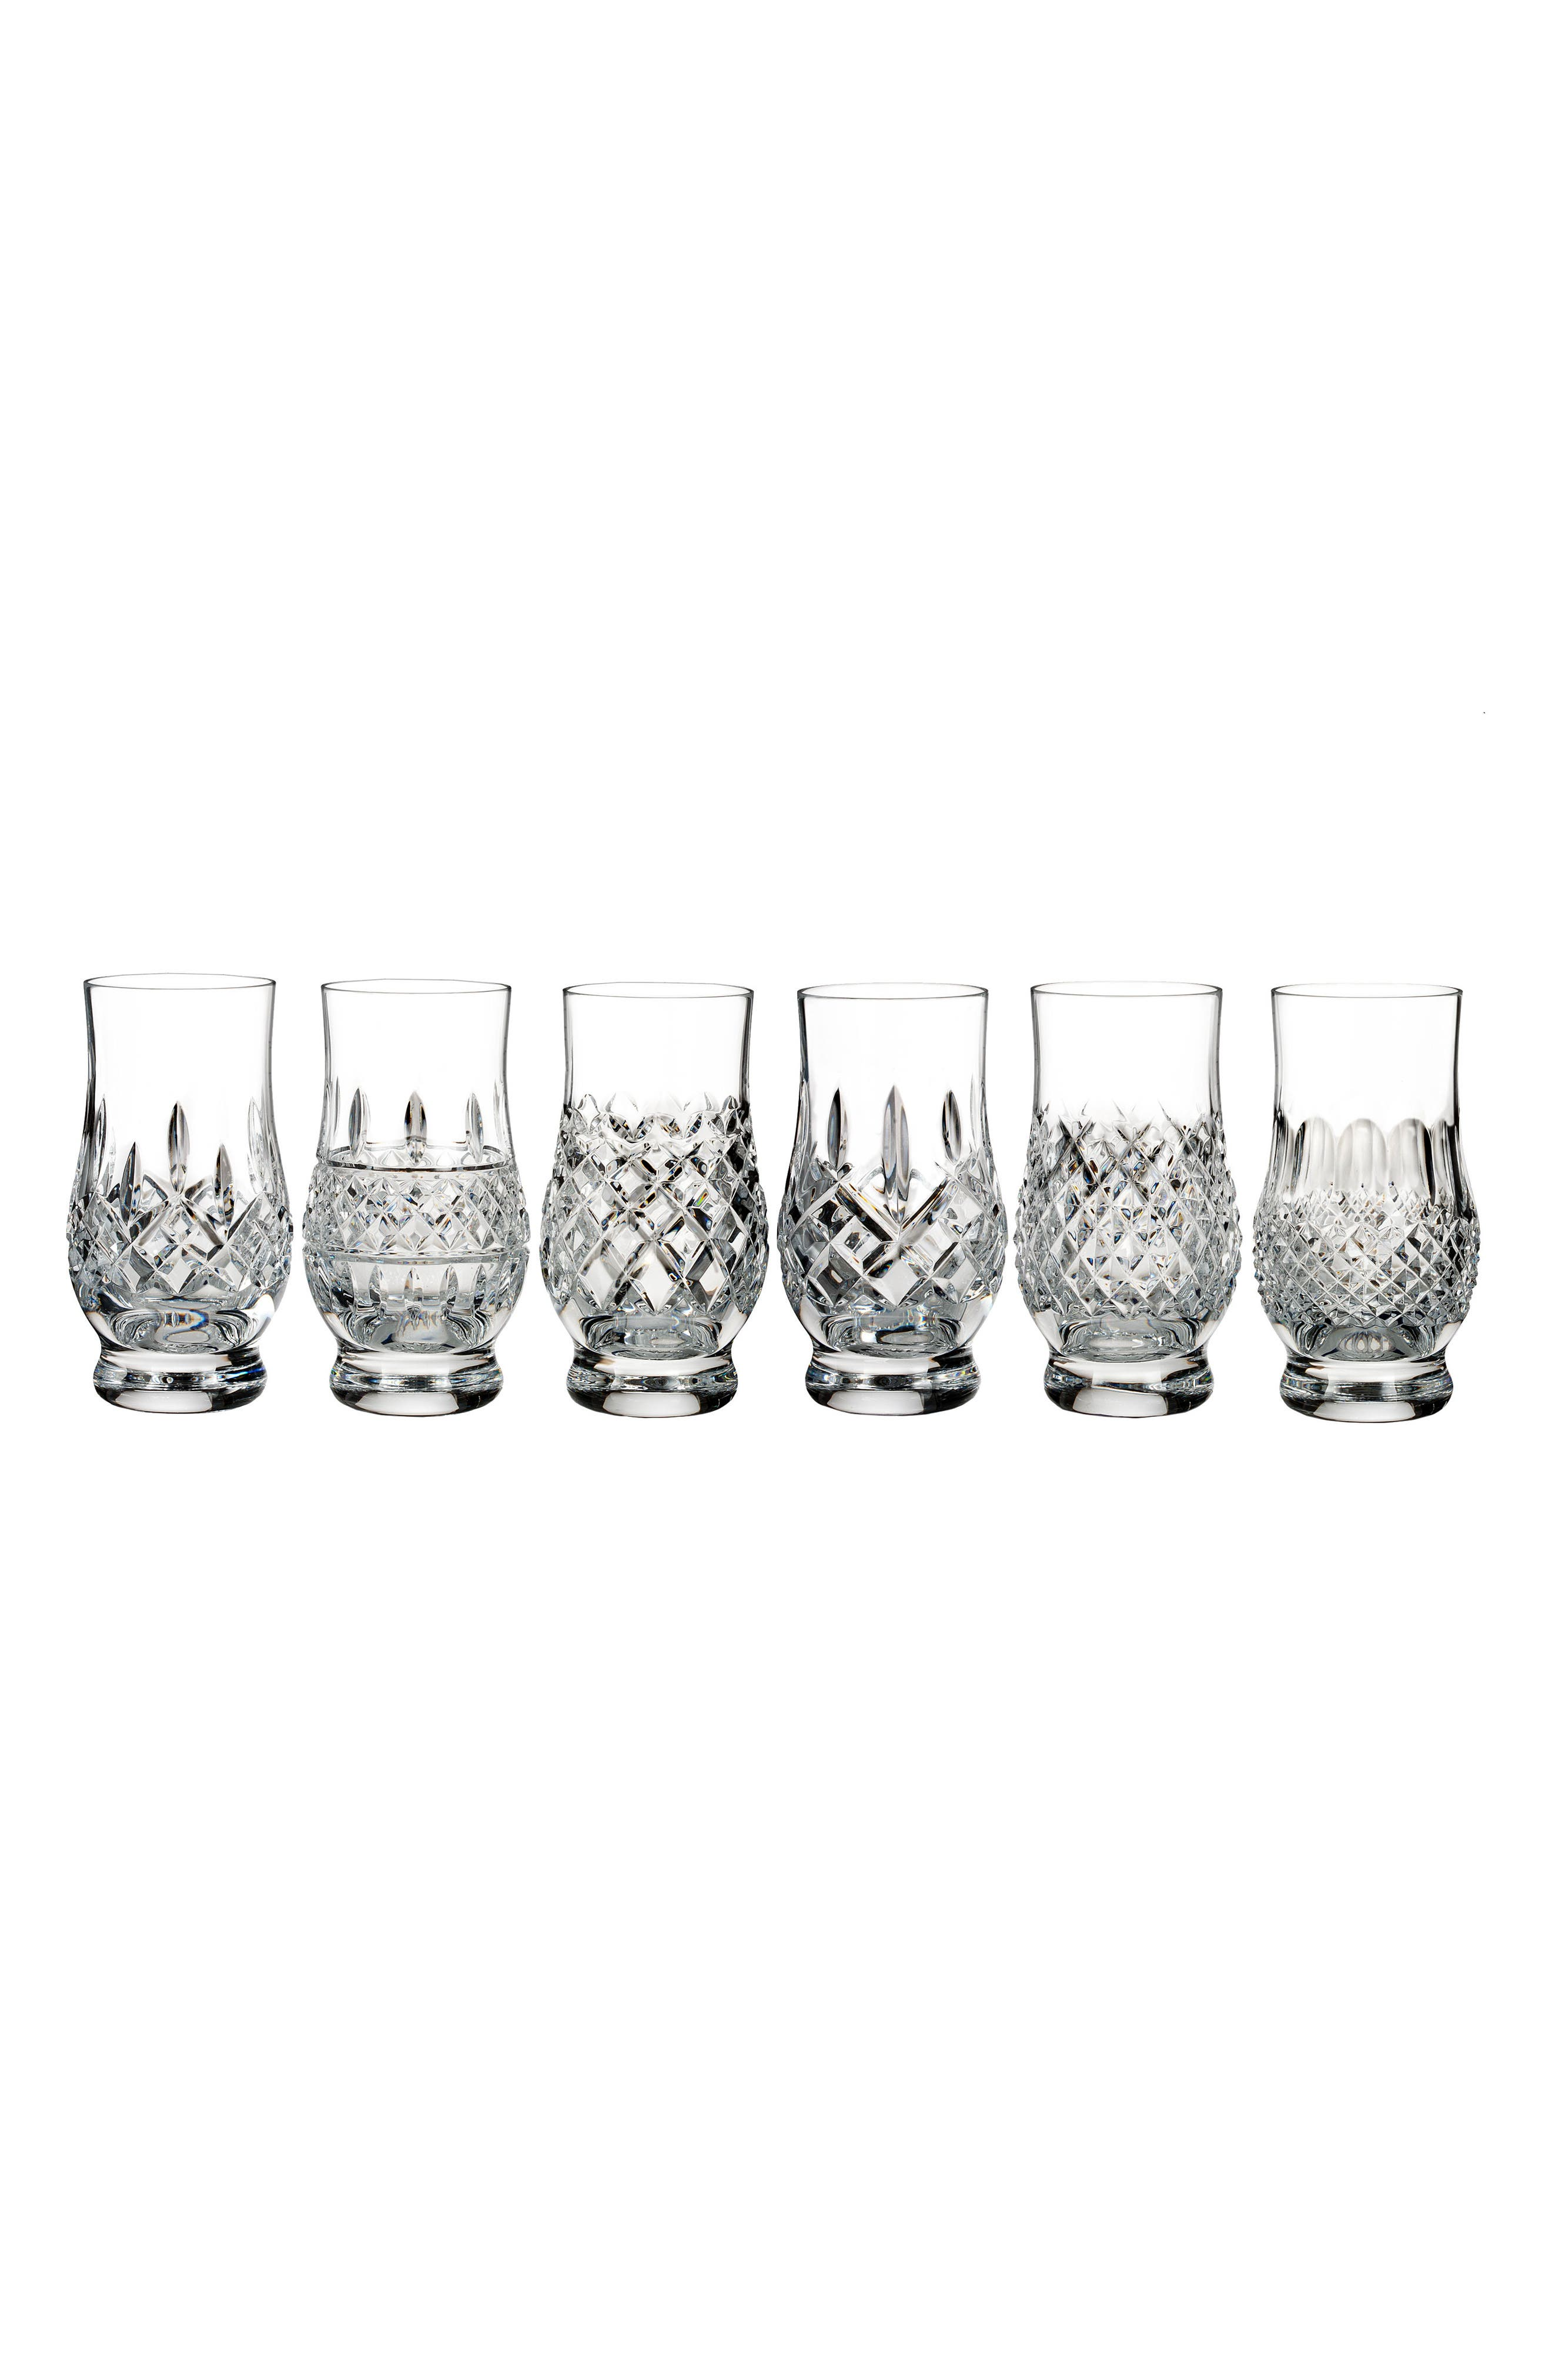 Connoisseur Set of 6 Footed Lead Crystal Tumblers,                         Main,                         color, 100